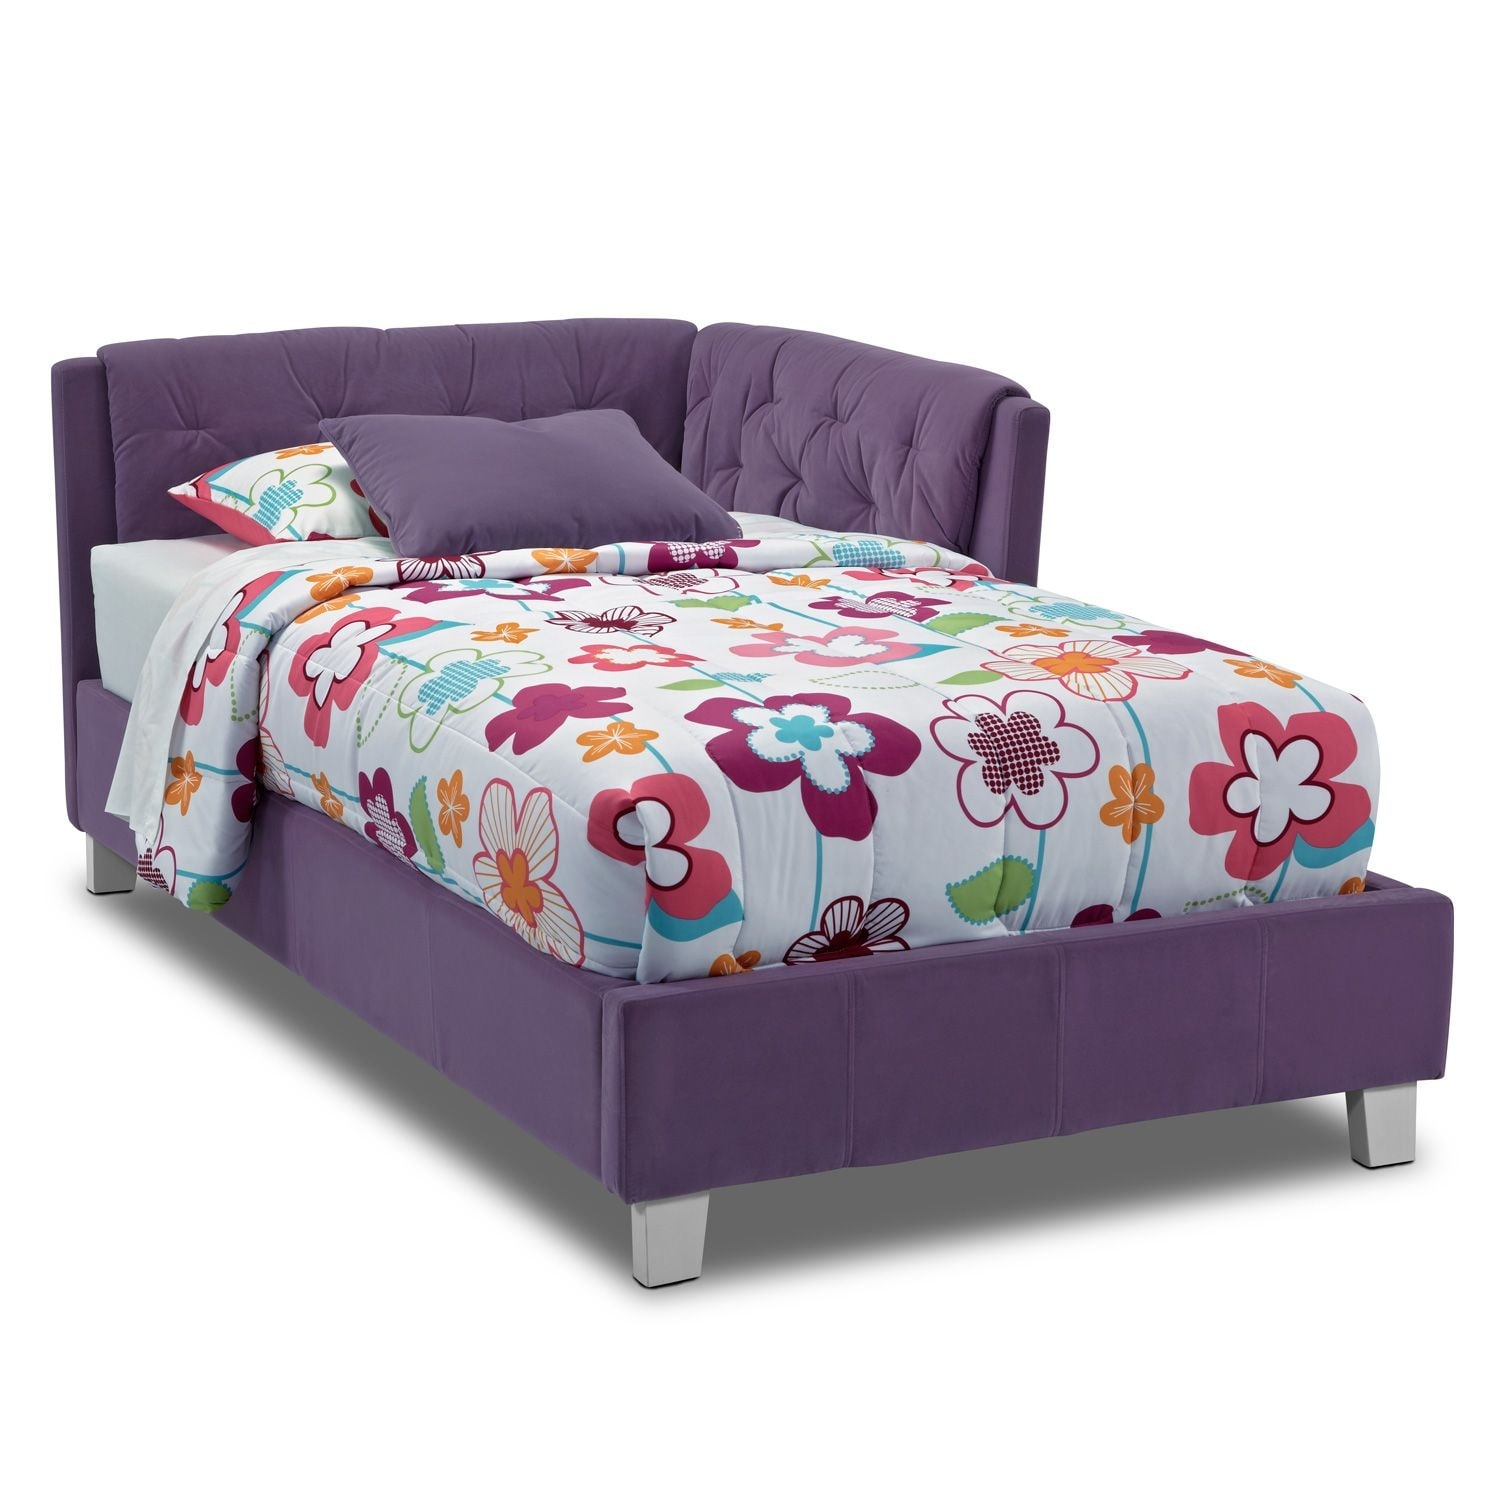 Jordan Twin Corner Bed - Purple  Value City Furniture